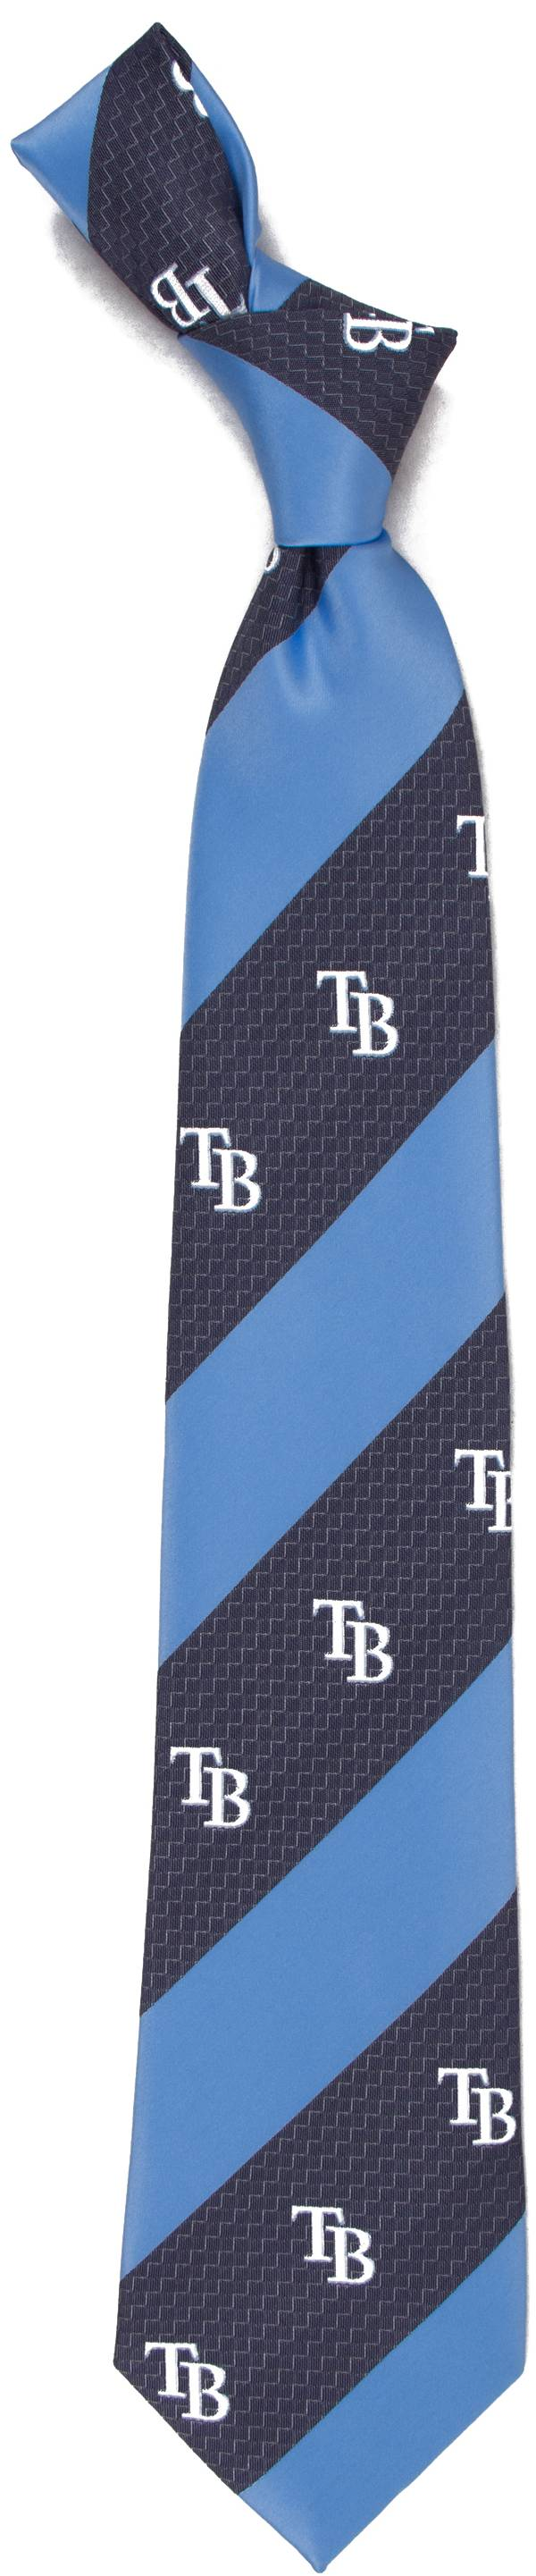 Eagles Wings Tampa Bay Rays Geo Stripe Necktie product image